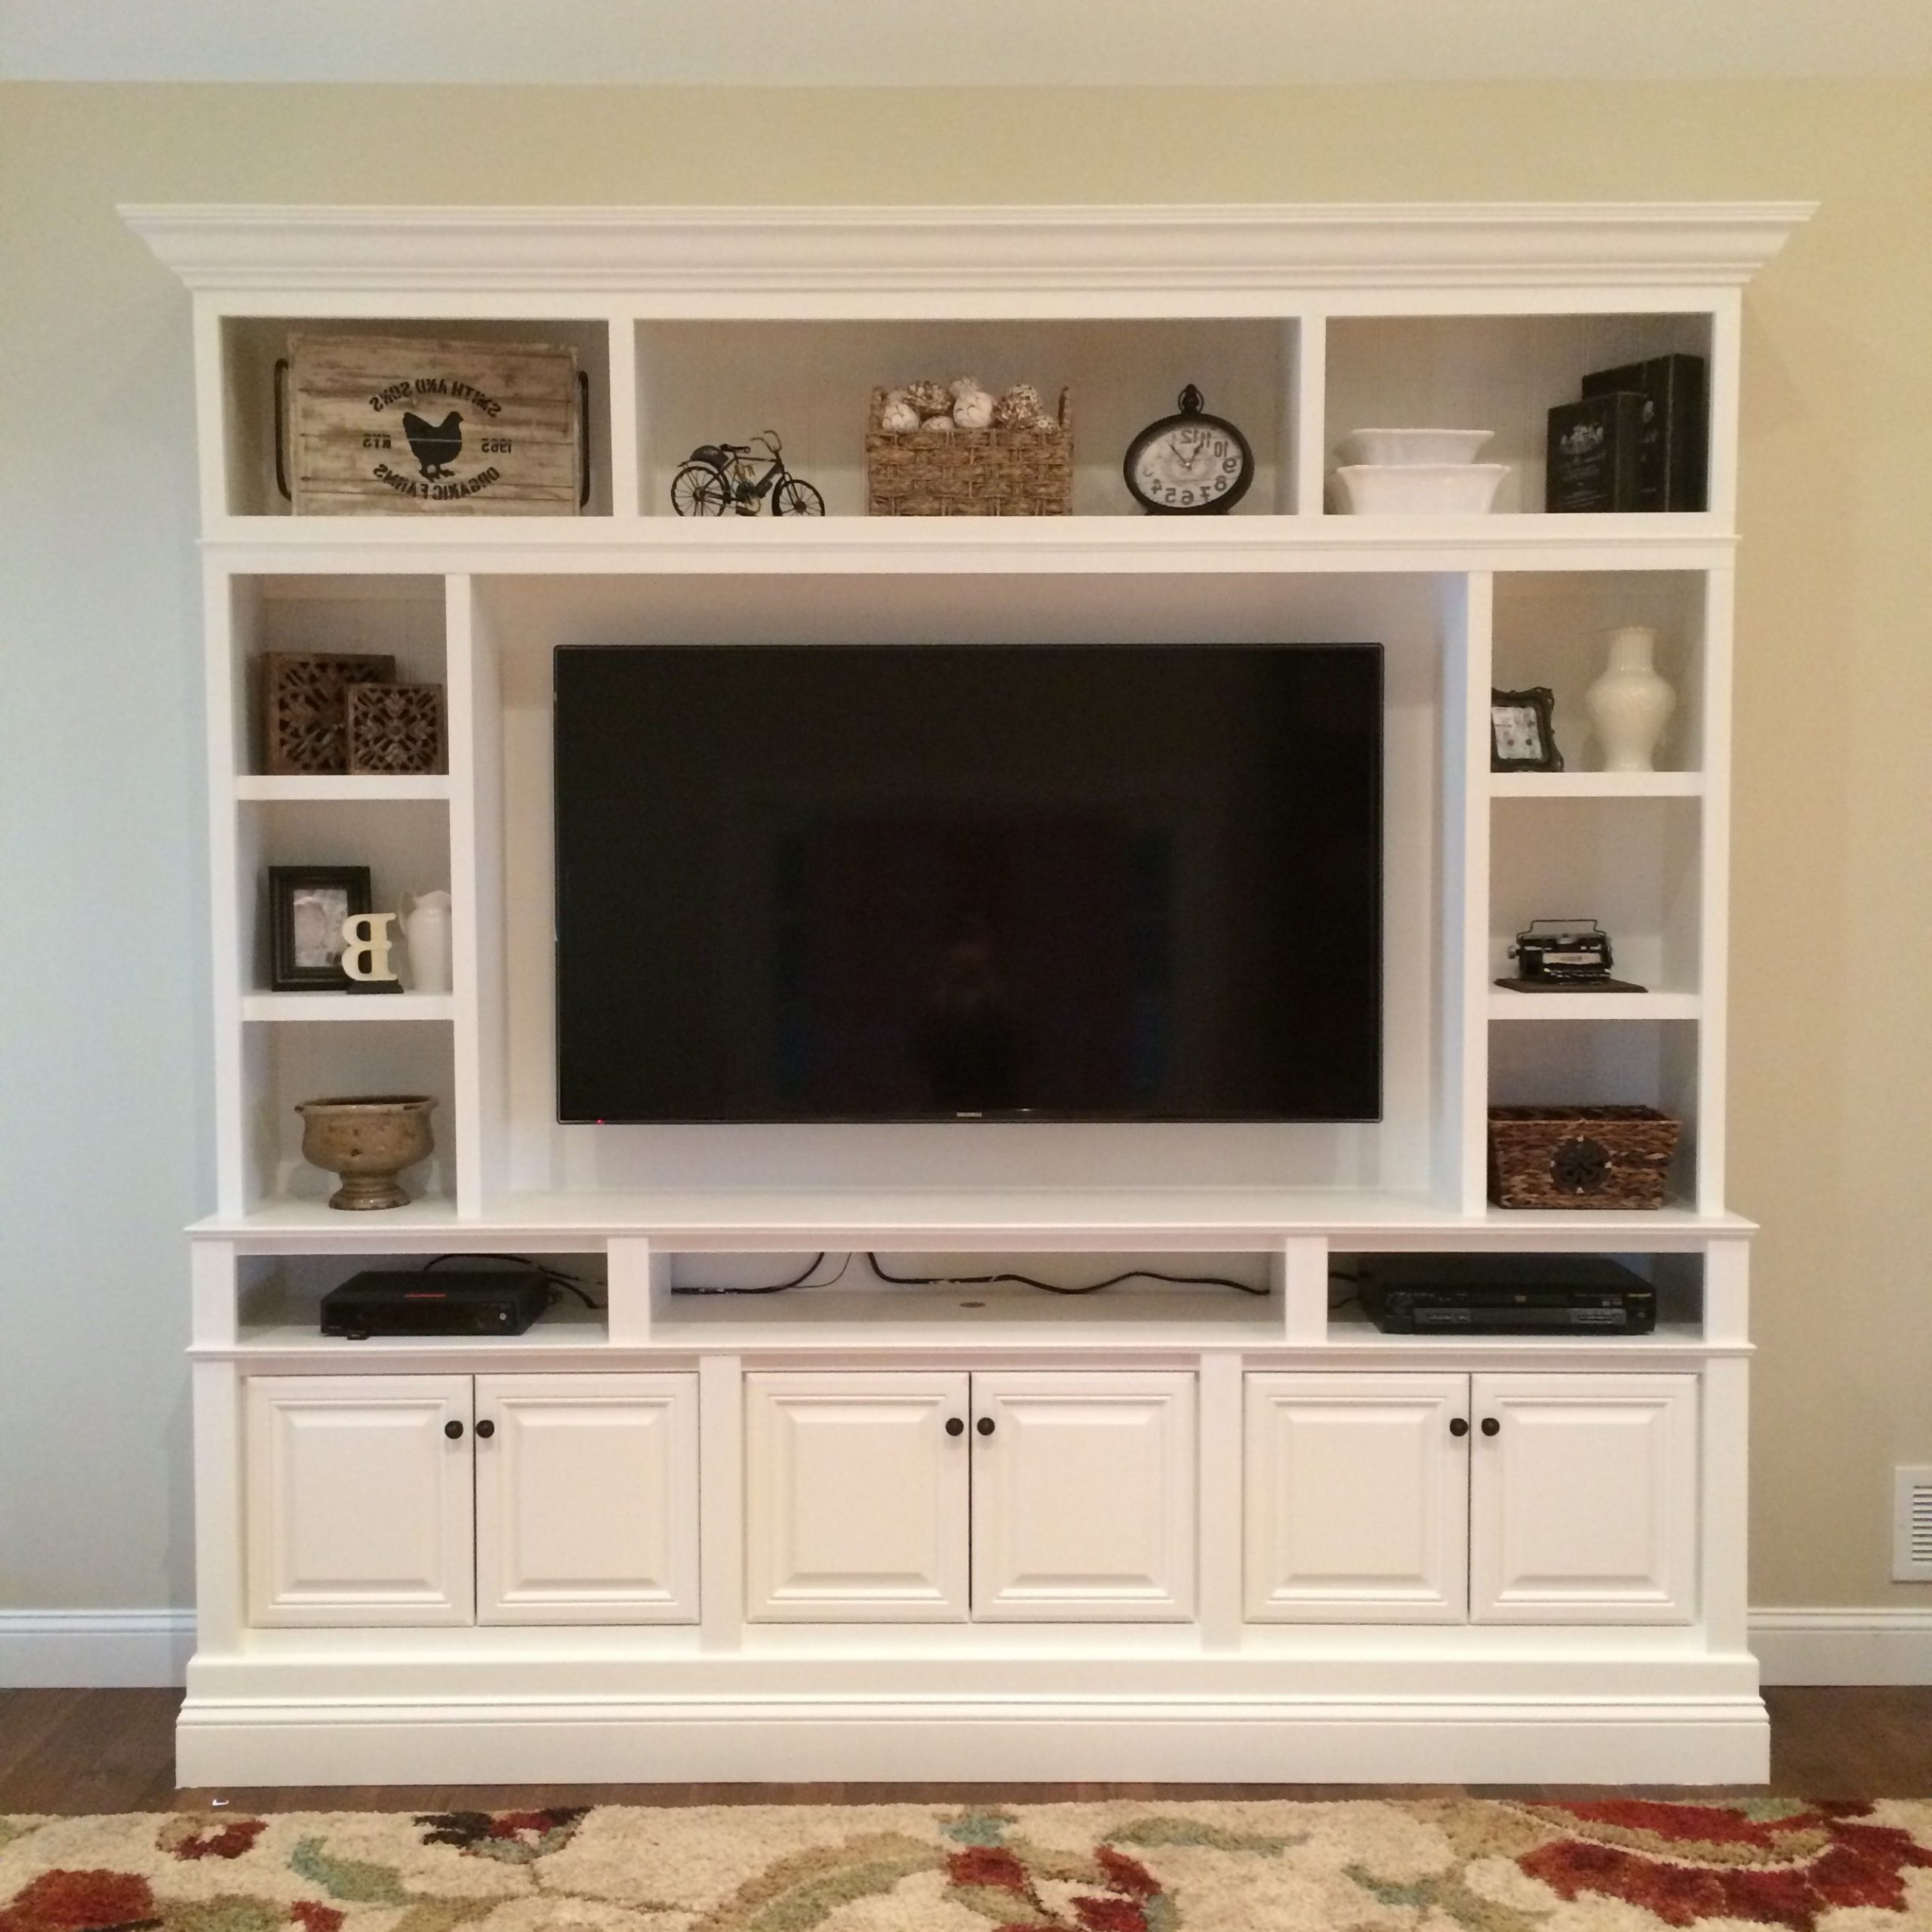 Diy Convertible Tv Stands And Bookcase Regarding Famous 28+ Amazing Diy Tv Stand Ideas That You Can Build Right (View 1 of 10)